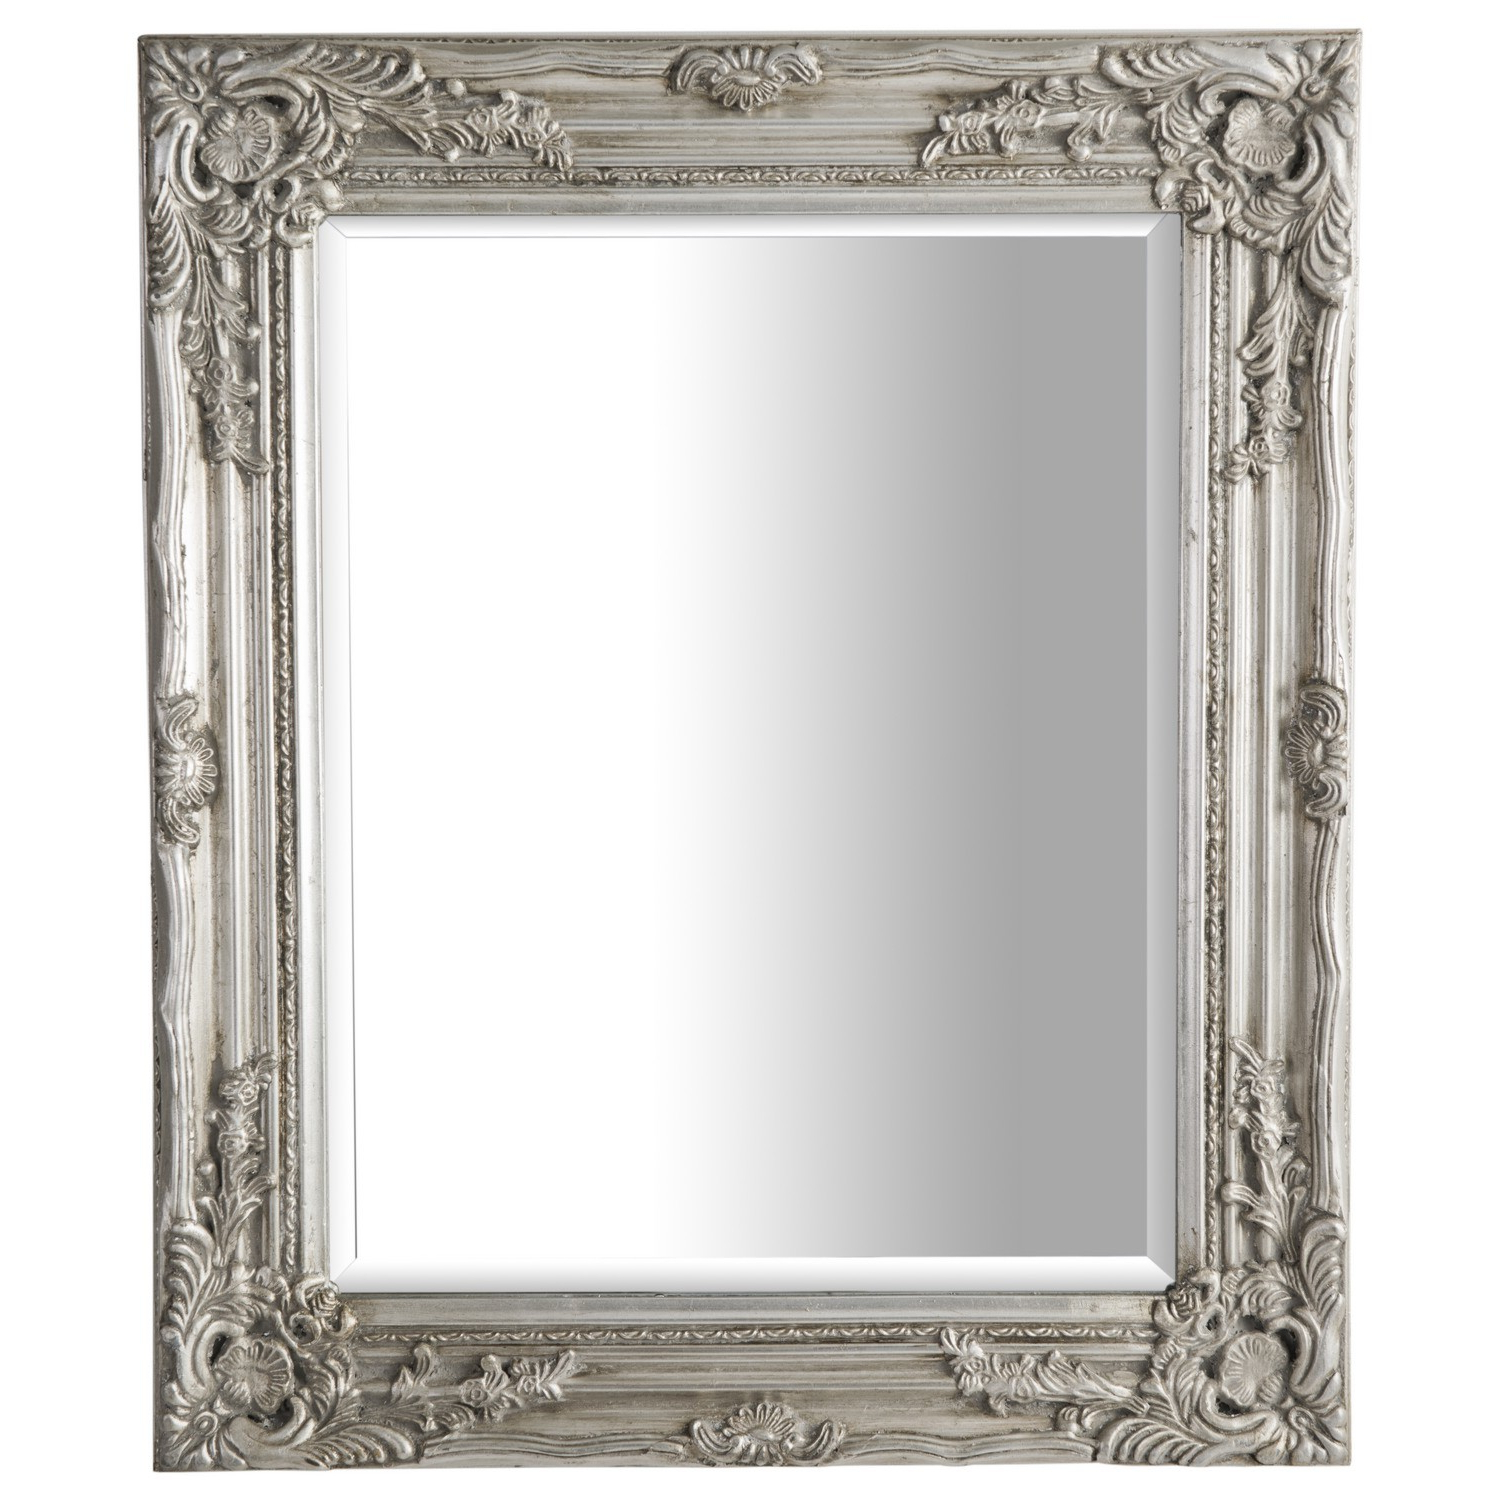 Silver Antique Ornate Mirror Intended For Famous Large Ornate Wall Mirrors (View 7 of 20)